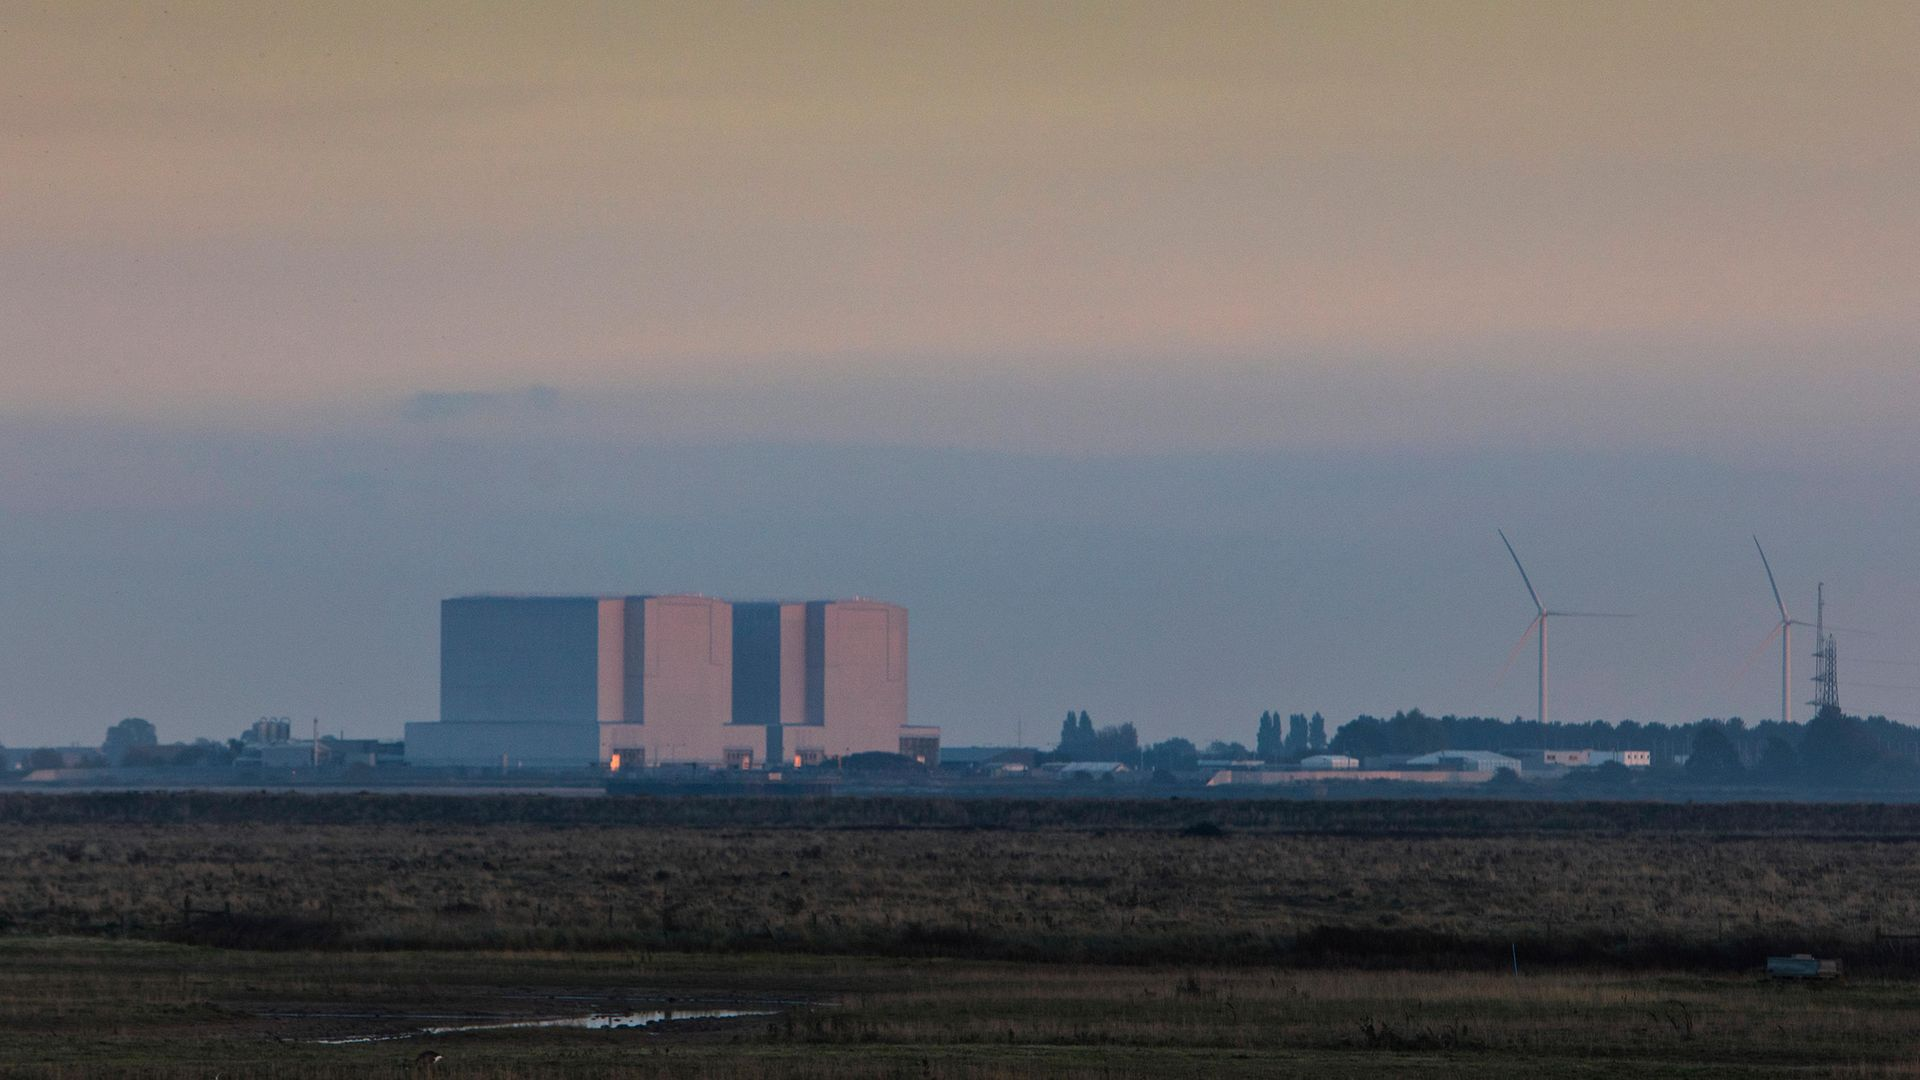 Bradwell nuclear power station located on the Dengie peninsula at the mouth of the River Blackwater, Essex - Credit: In Pictures via Getty Images